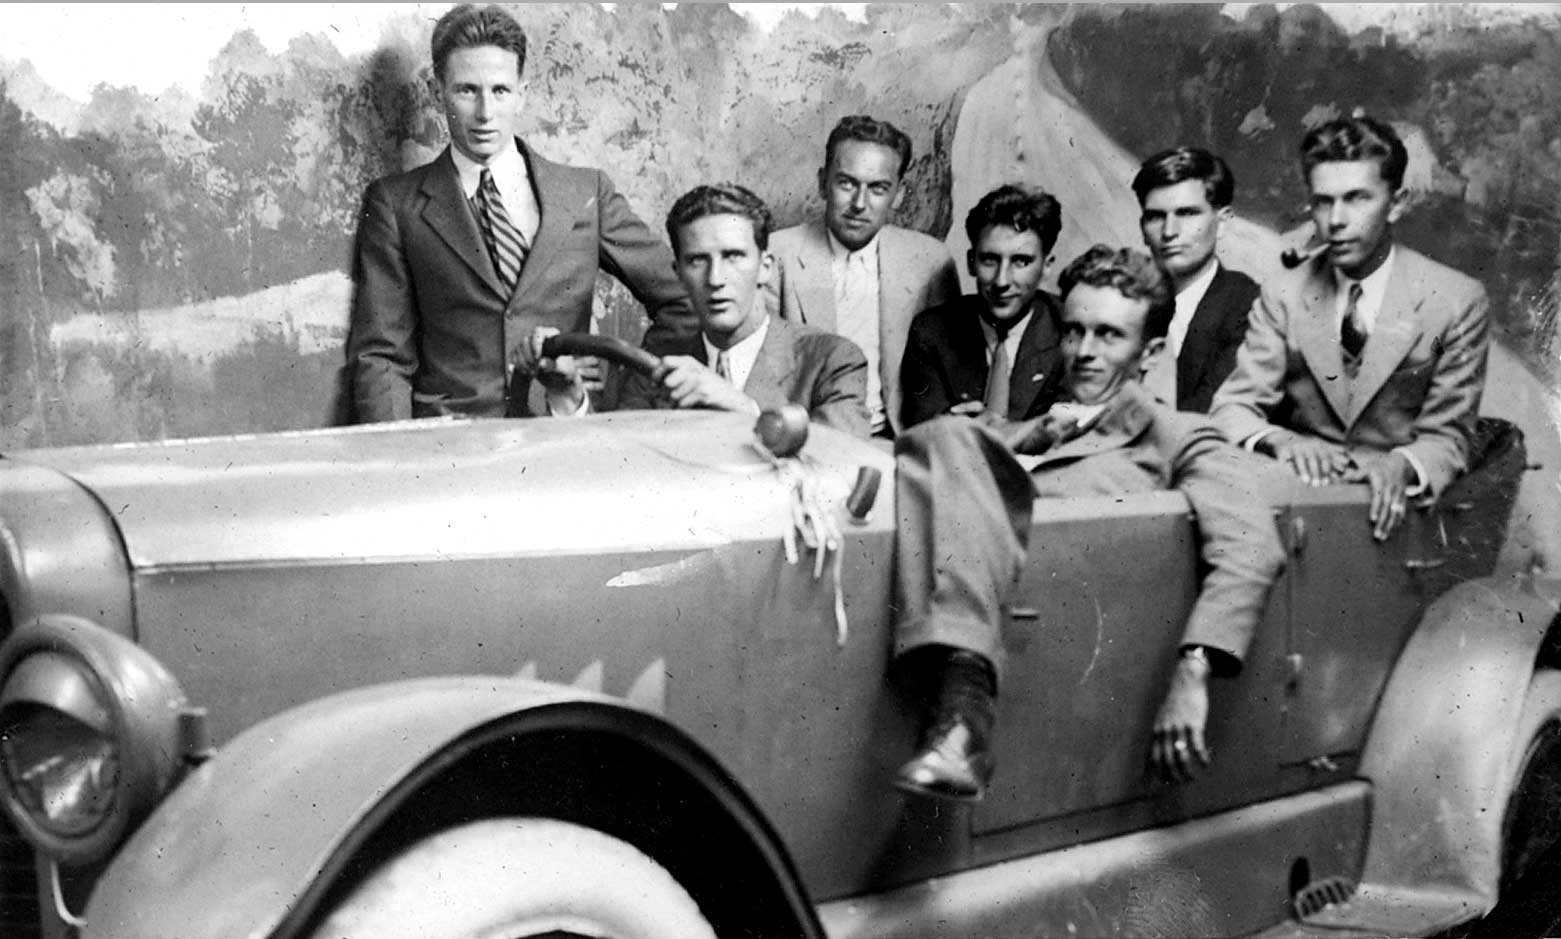 Friends at Coney Island. Bud Smith, Bill Warden at the wheel, Charles Geissler, Ian Warden, and Arthur Austin. Next to Art, Bub Toaspern, in front of Bub, Royden Toaspern. Photo courtesy of MBA.